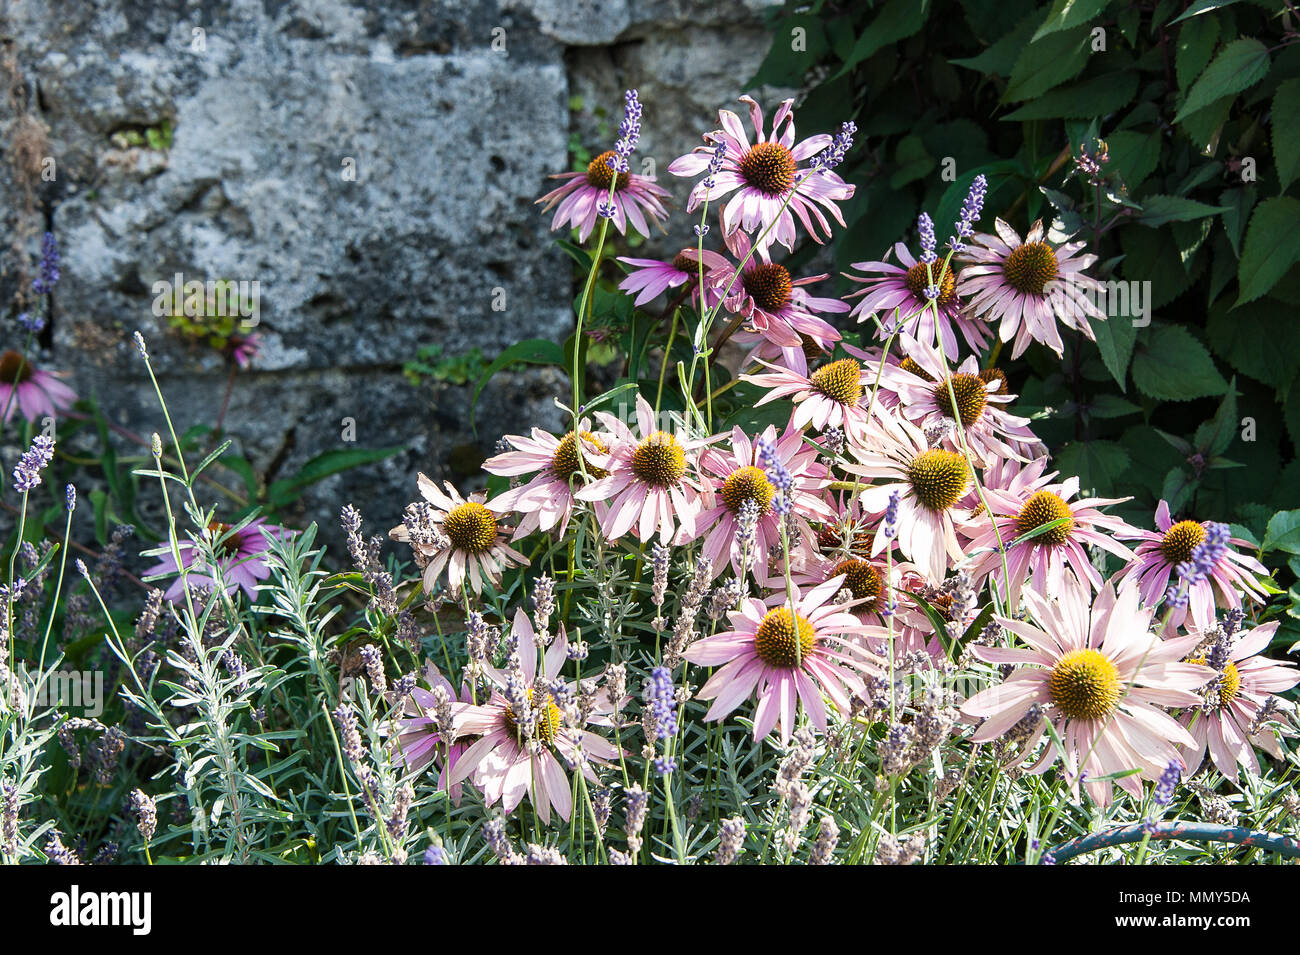 Pretty pink Echinacea purpurea (eastern purple coneflower) in bloom. Commonly used in the pharmaceutical trade and is an indigenous herbal medicine. - Stock Image